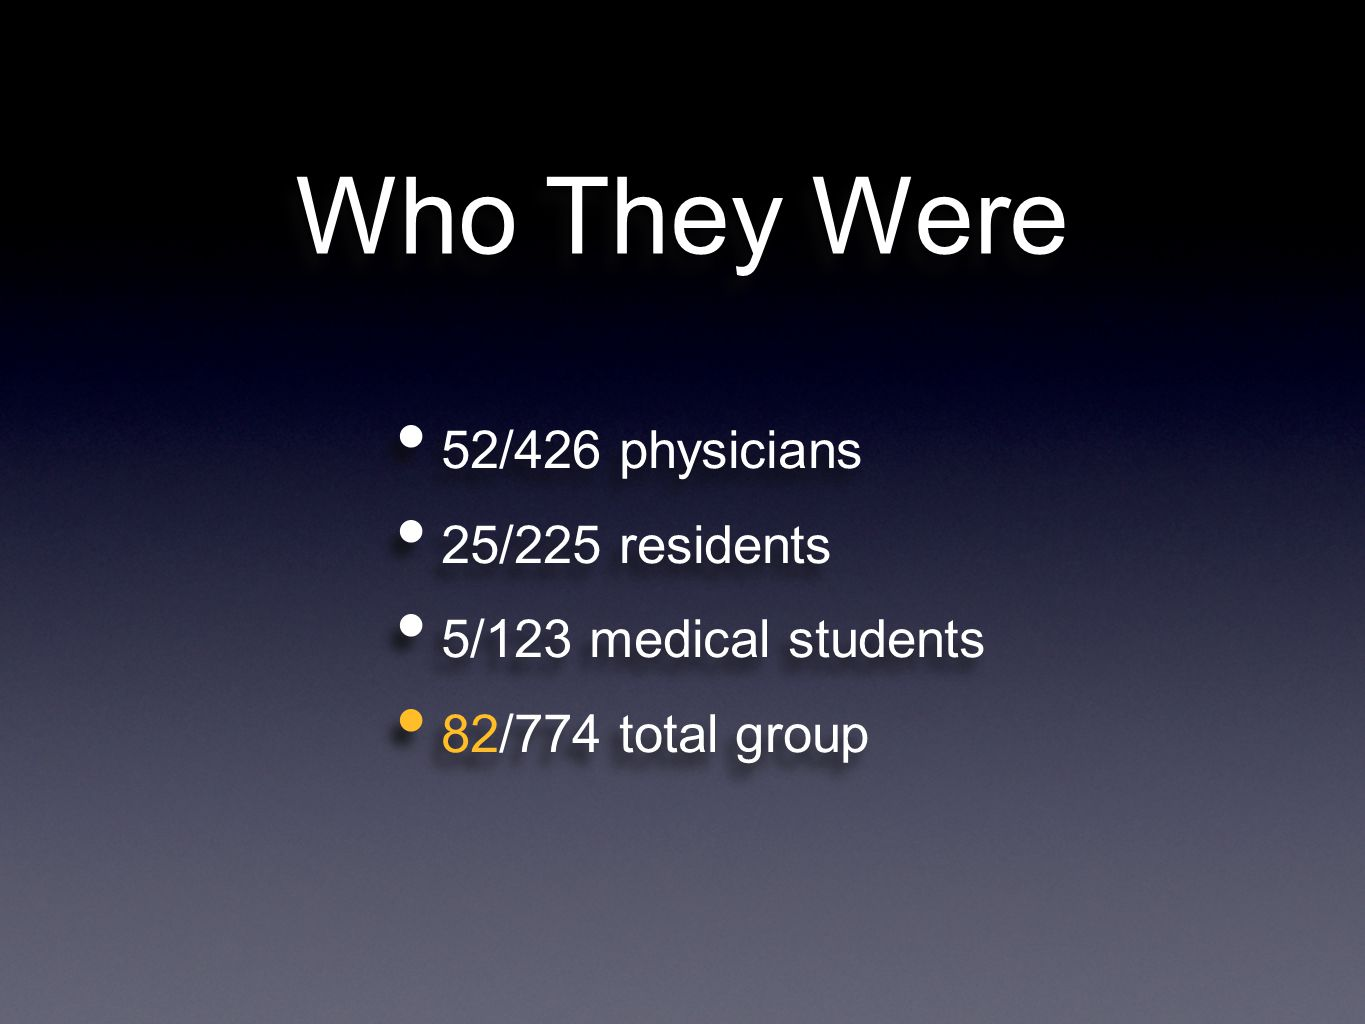 Who They Were 52/426 physicians 25/225 residents 5/123 medical students 82/774 total group 52/426 physicians 25/225 residents 5/123 medical students 82/774 total group